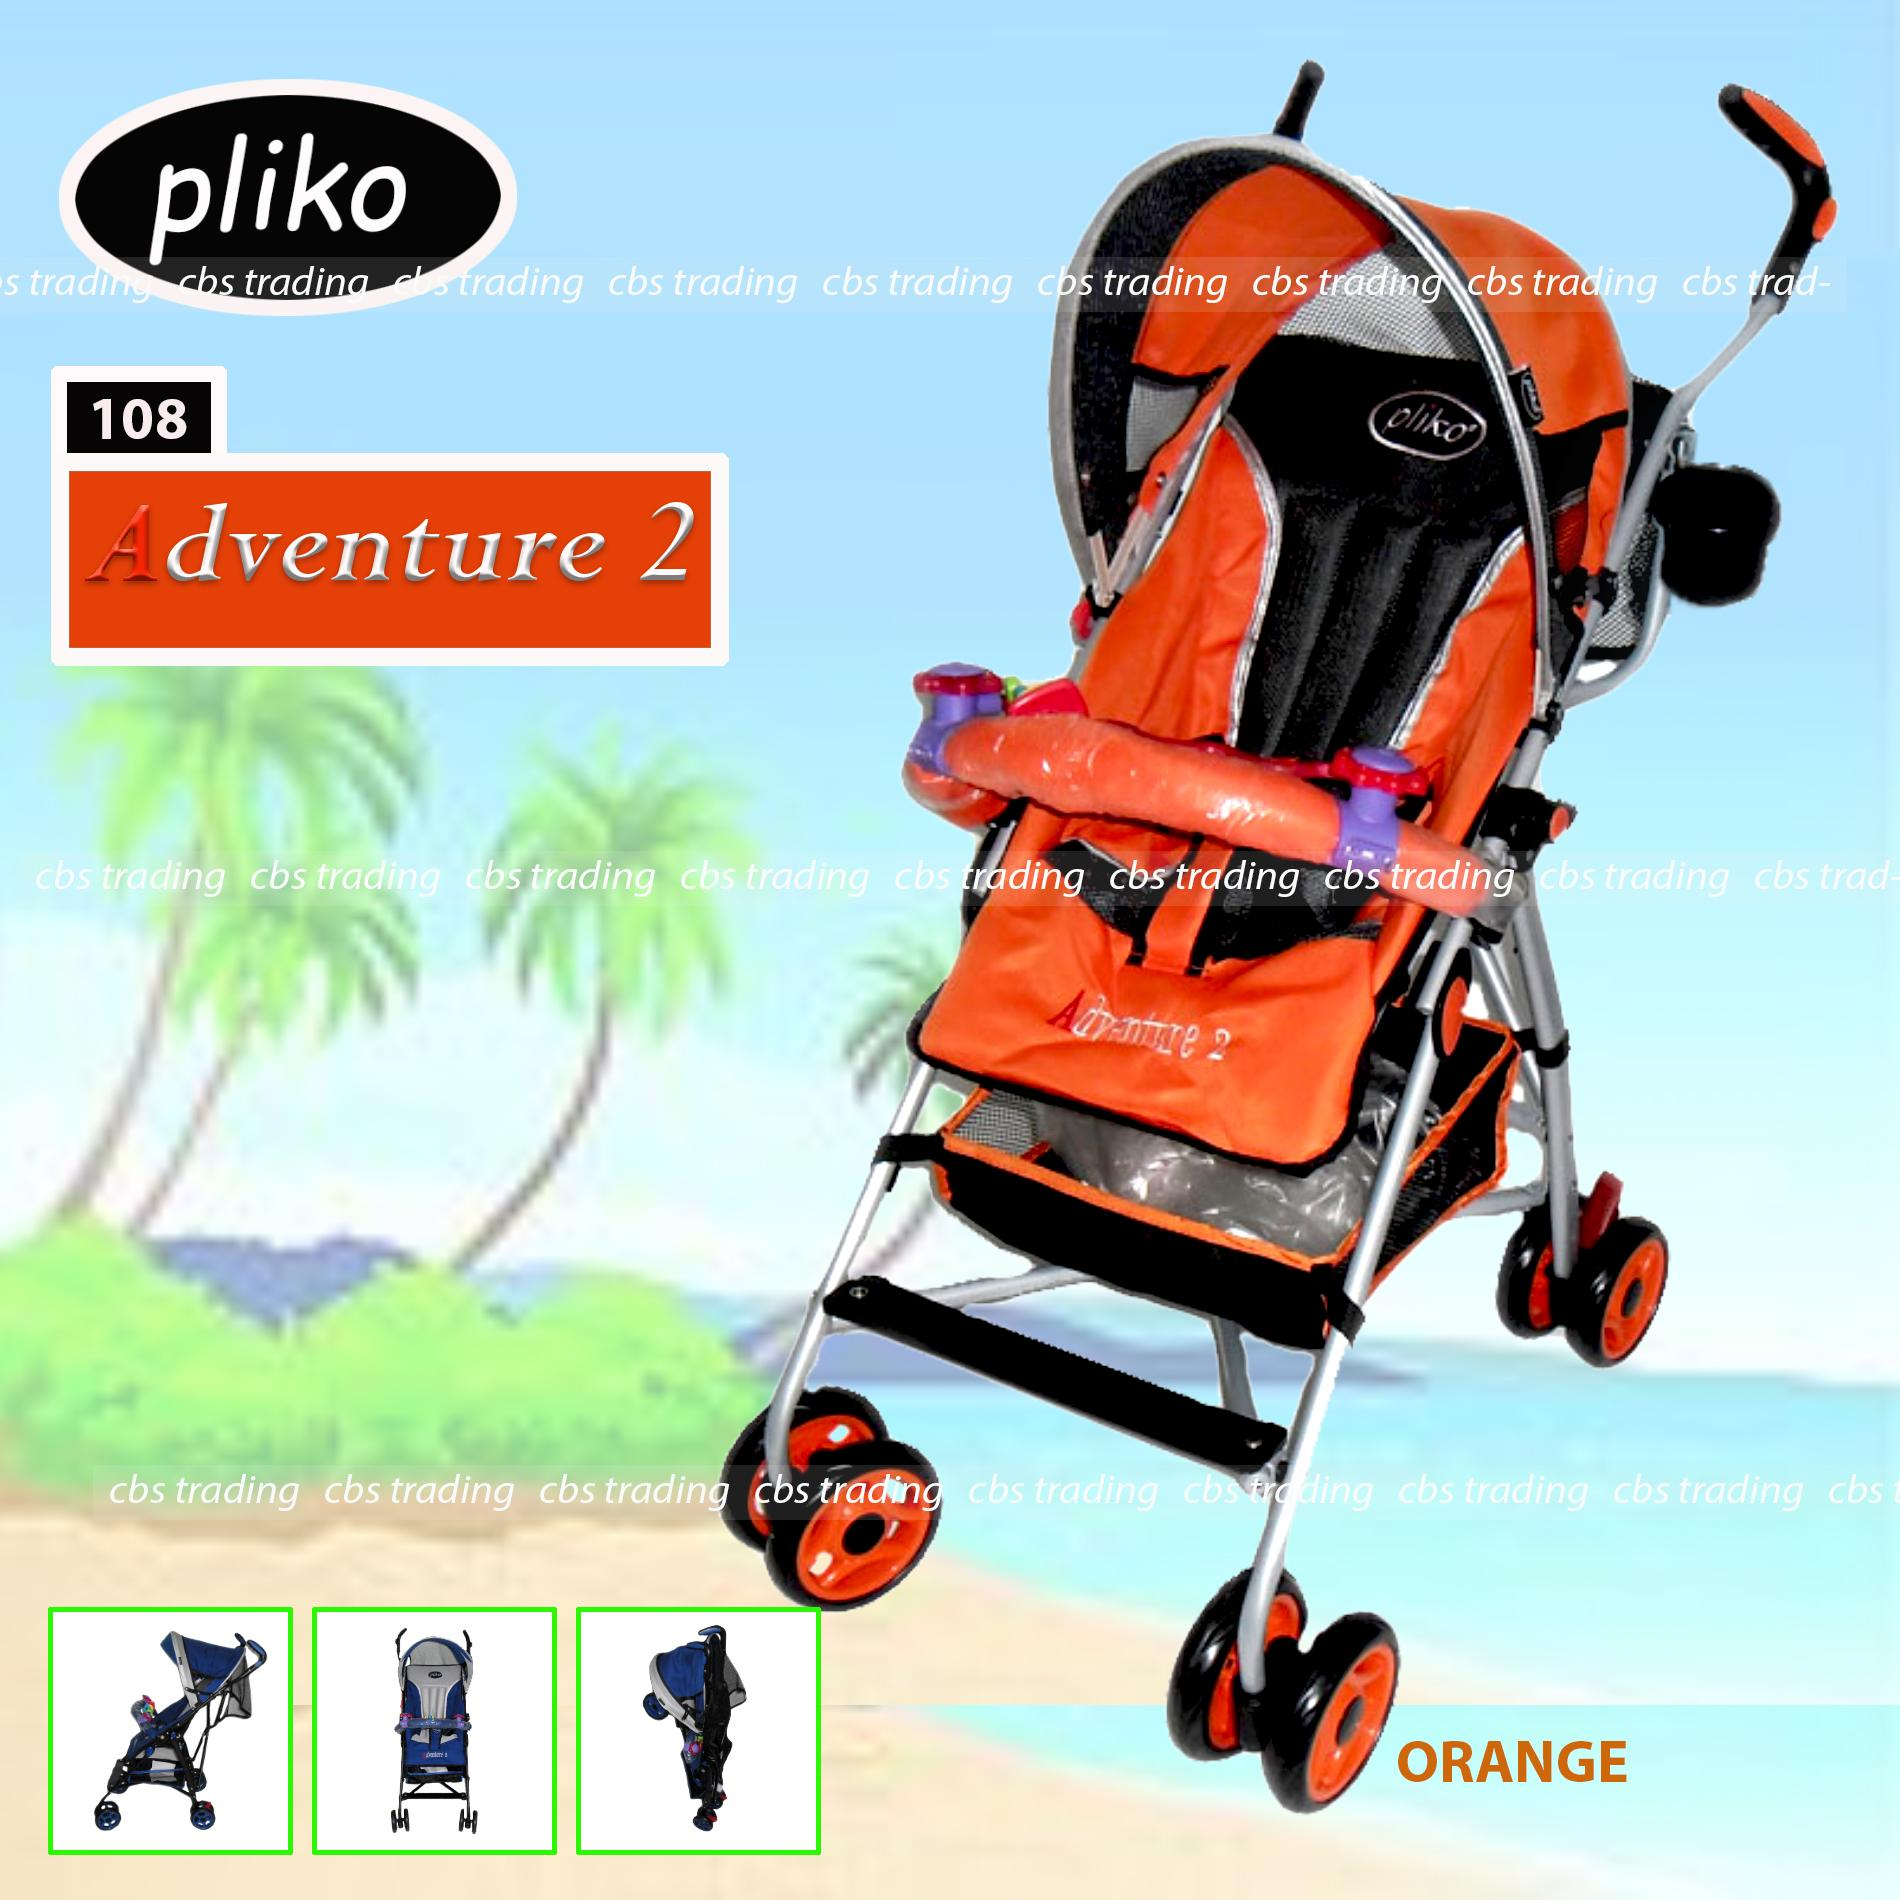 Pliko Stroller New Buggy Adventure 2 S-108 - Kereta Dorong Bayi - Orange